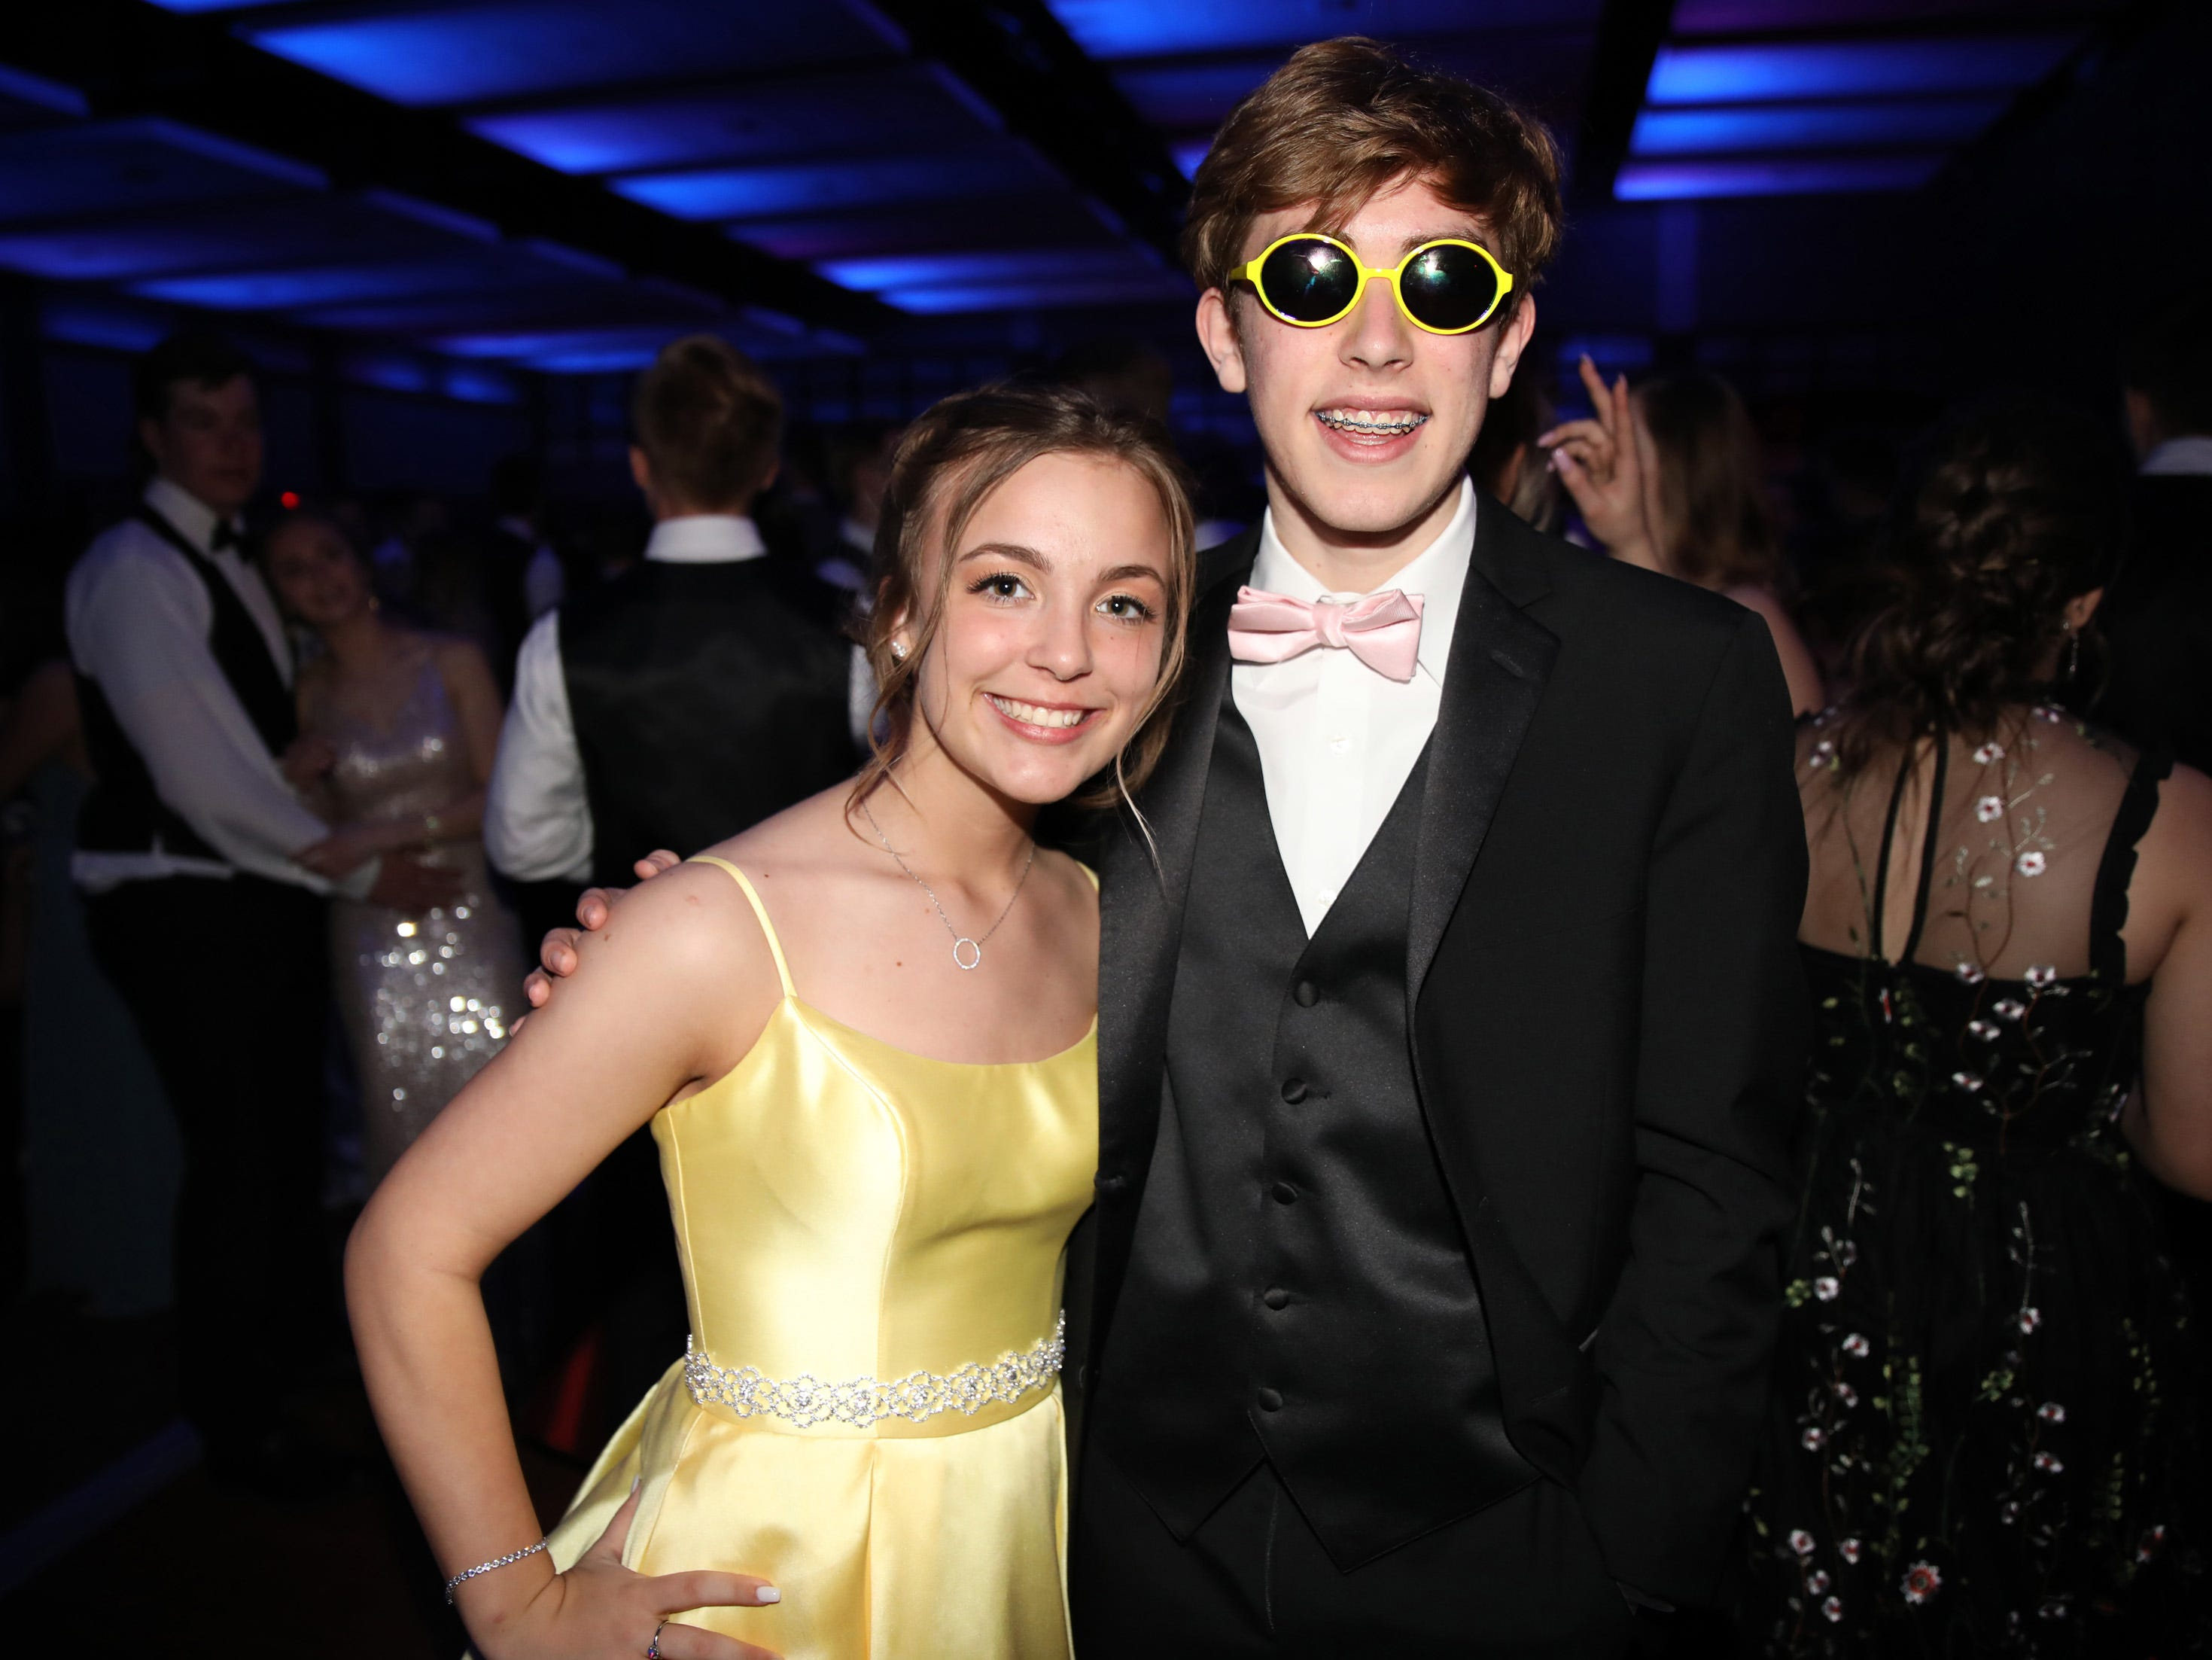 Desiree Foster and Colin McBride have fun at the Waukee High School Prom at the Ron Pearson Center in West Des Moines on Saturday, April 6, 2019.